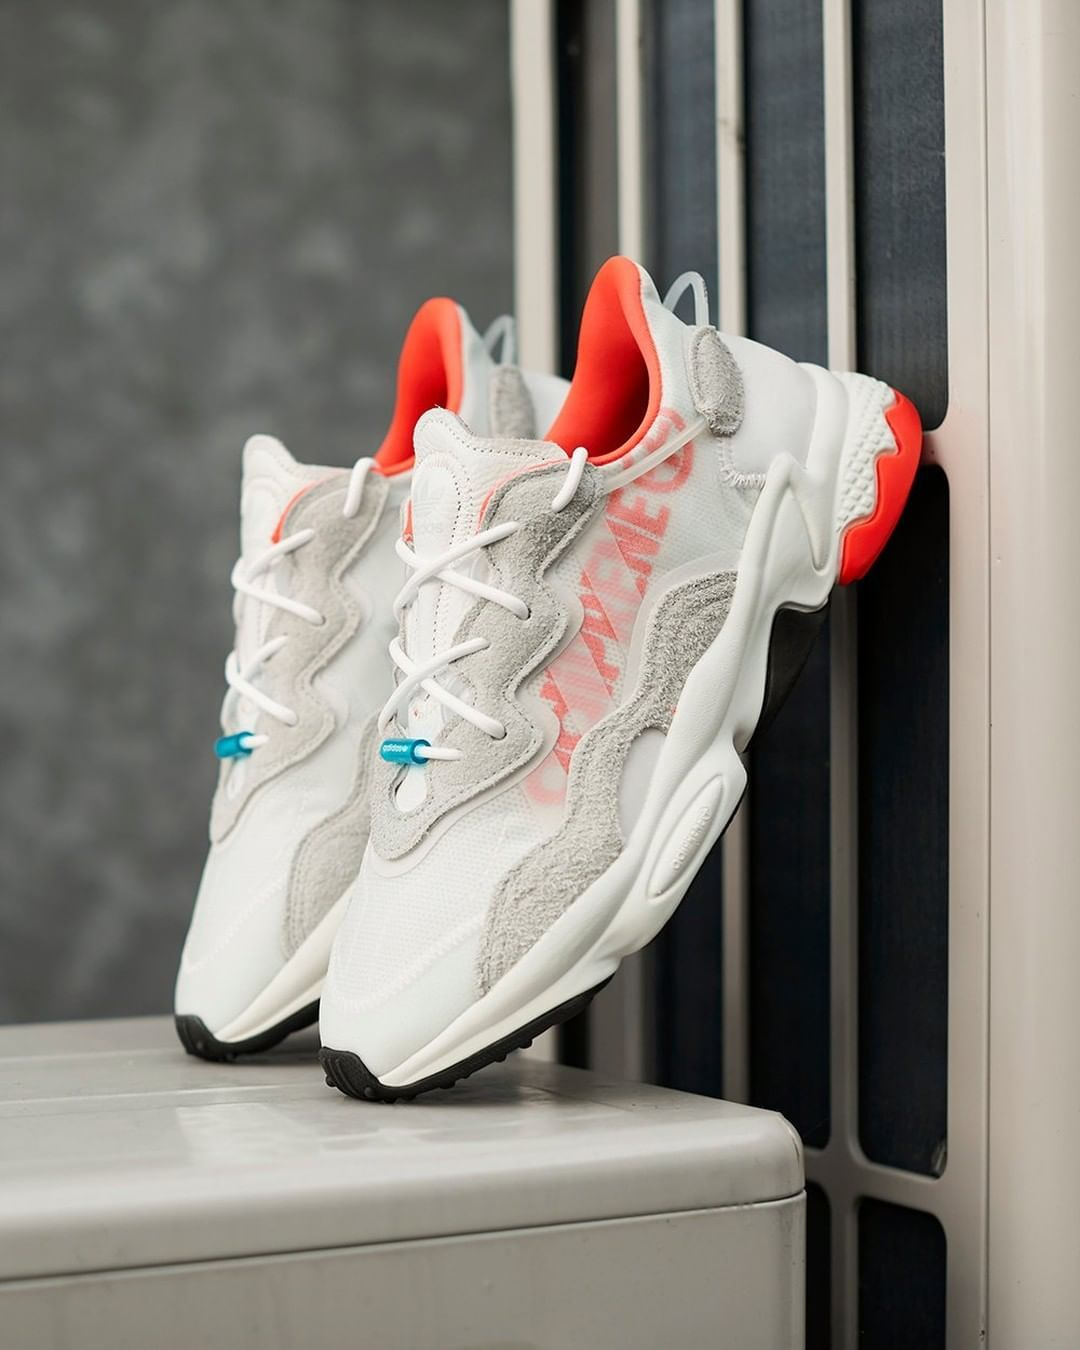 Bolsa Impresión Sedante  adidas Originals retune their classic 1998 Ozweego silhouette for 2019,  landing in a vibrant cloud white/solar red colourway | Sneakers, Sneakers  nike, Fashion